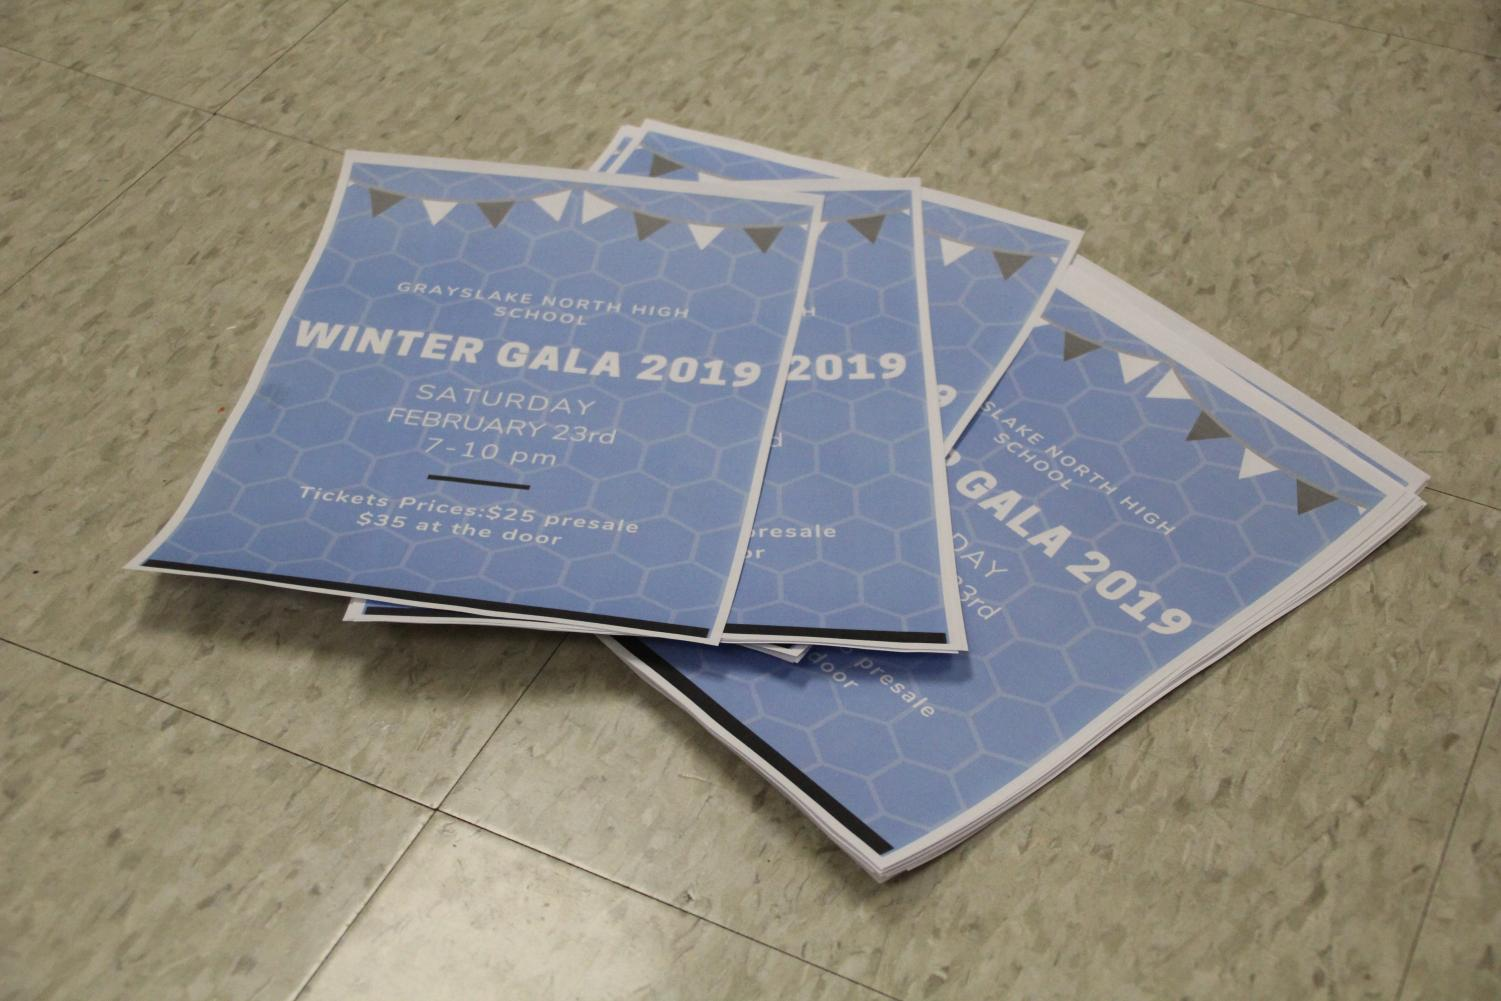 Gala flyers created by student council members. Photo by Hayley Breines